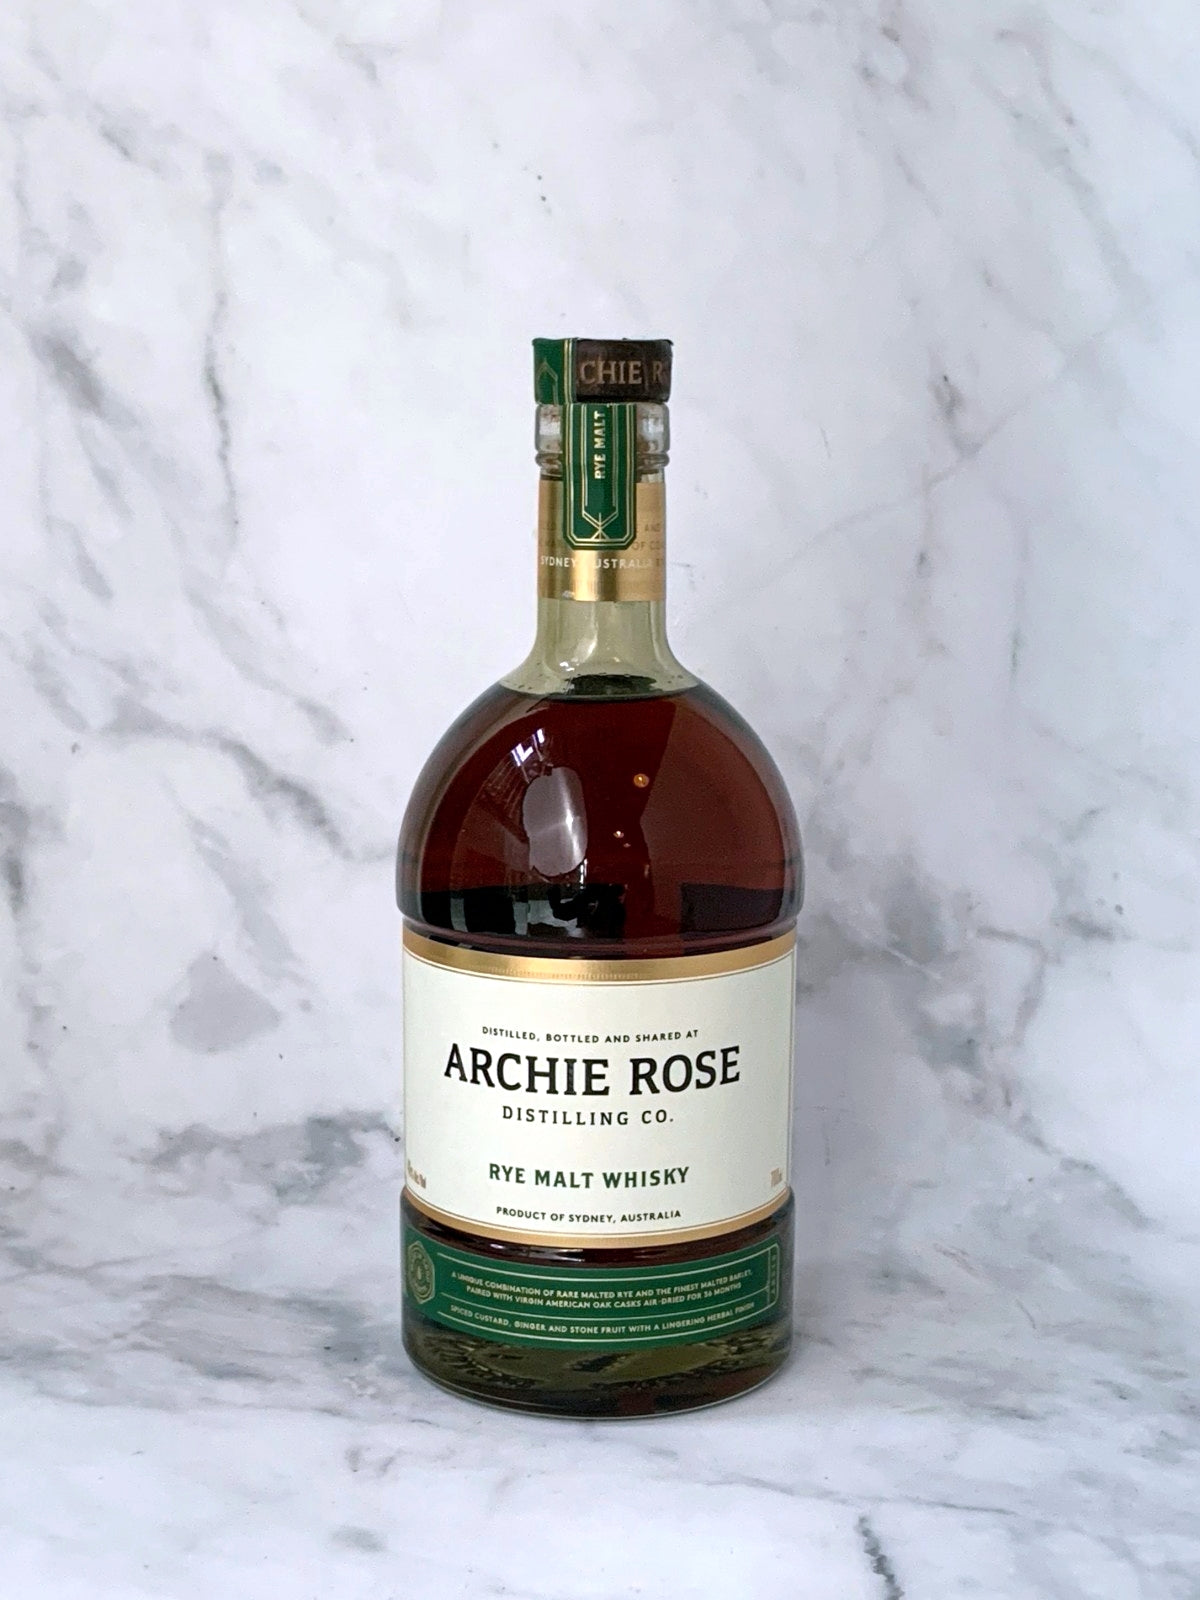 Archie Rose Rye Malt (50ml serve)